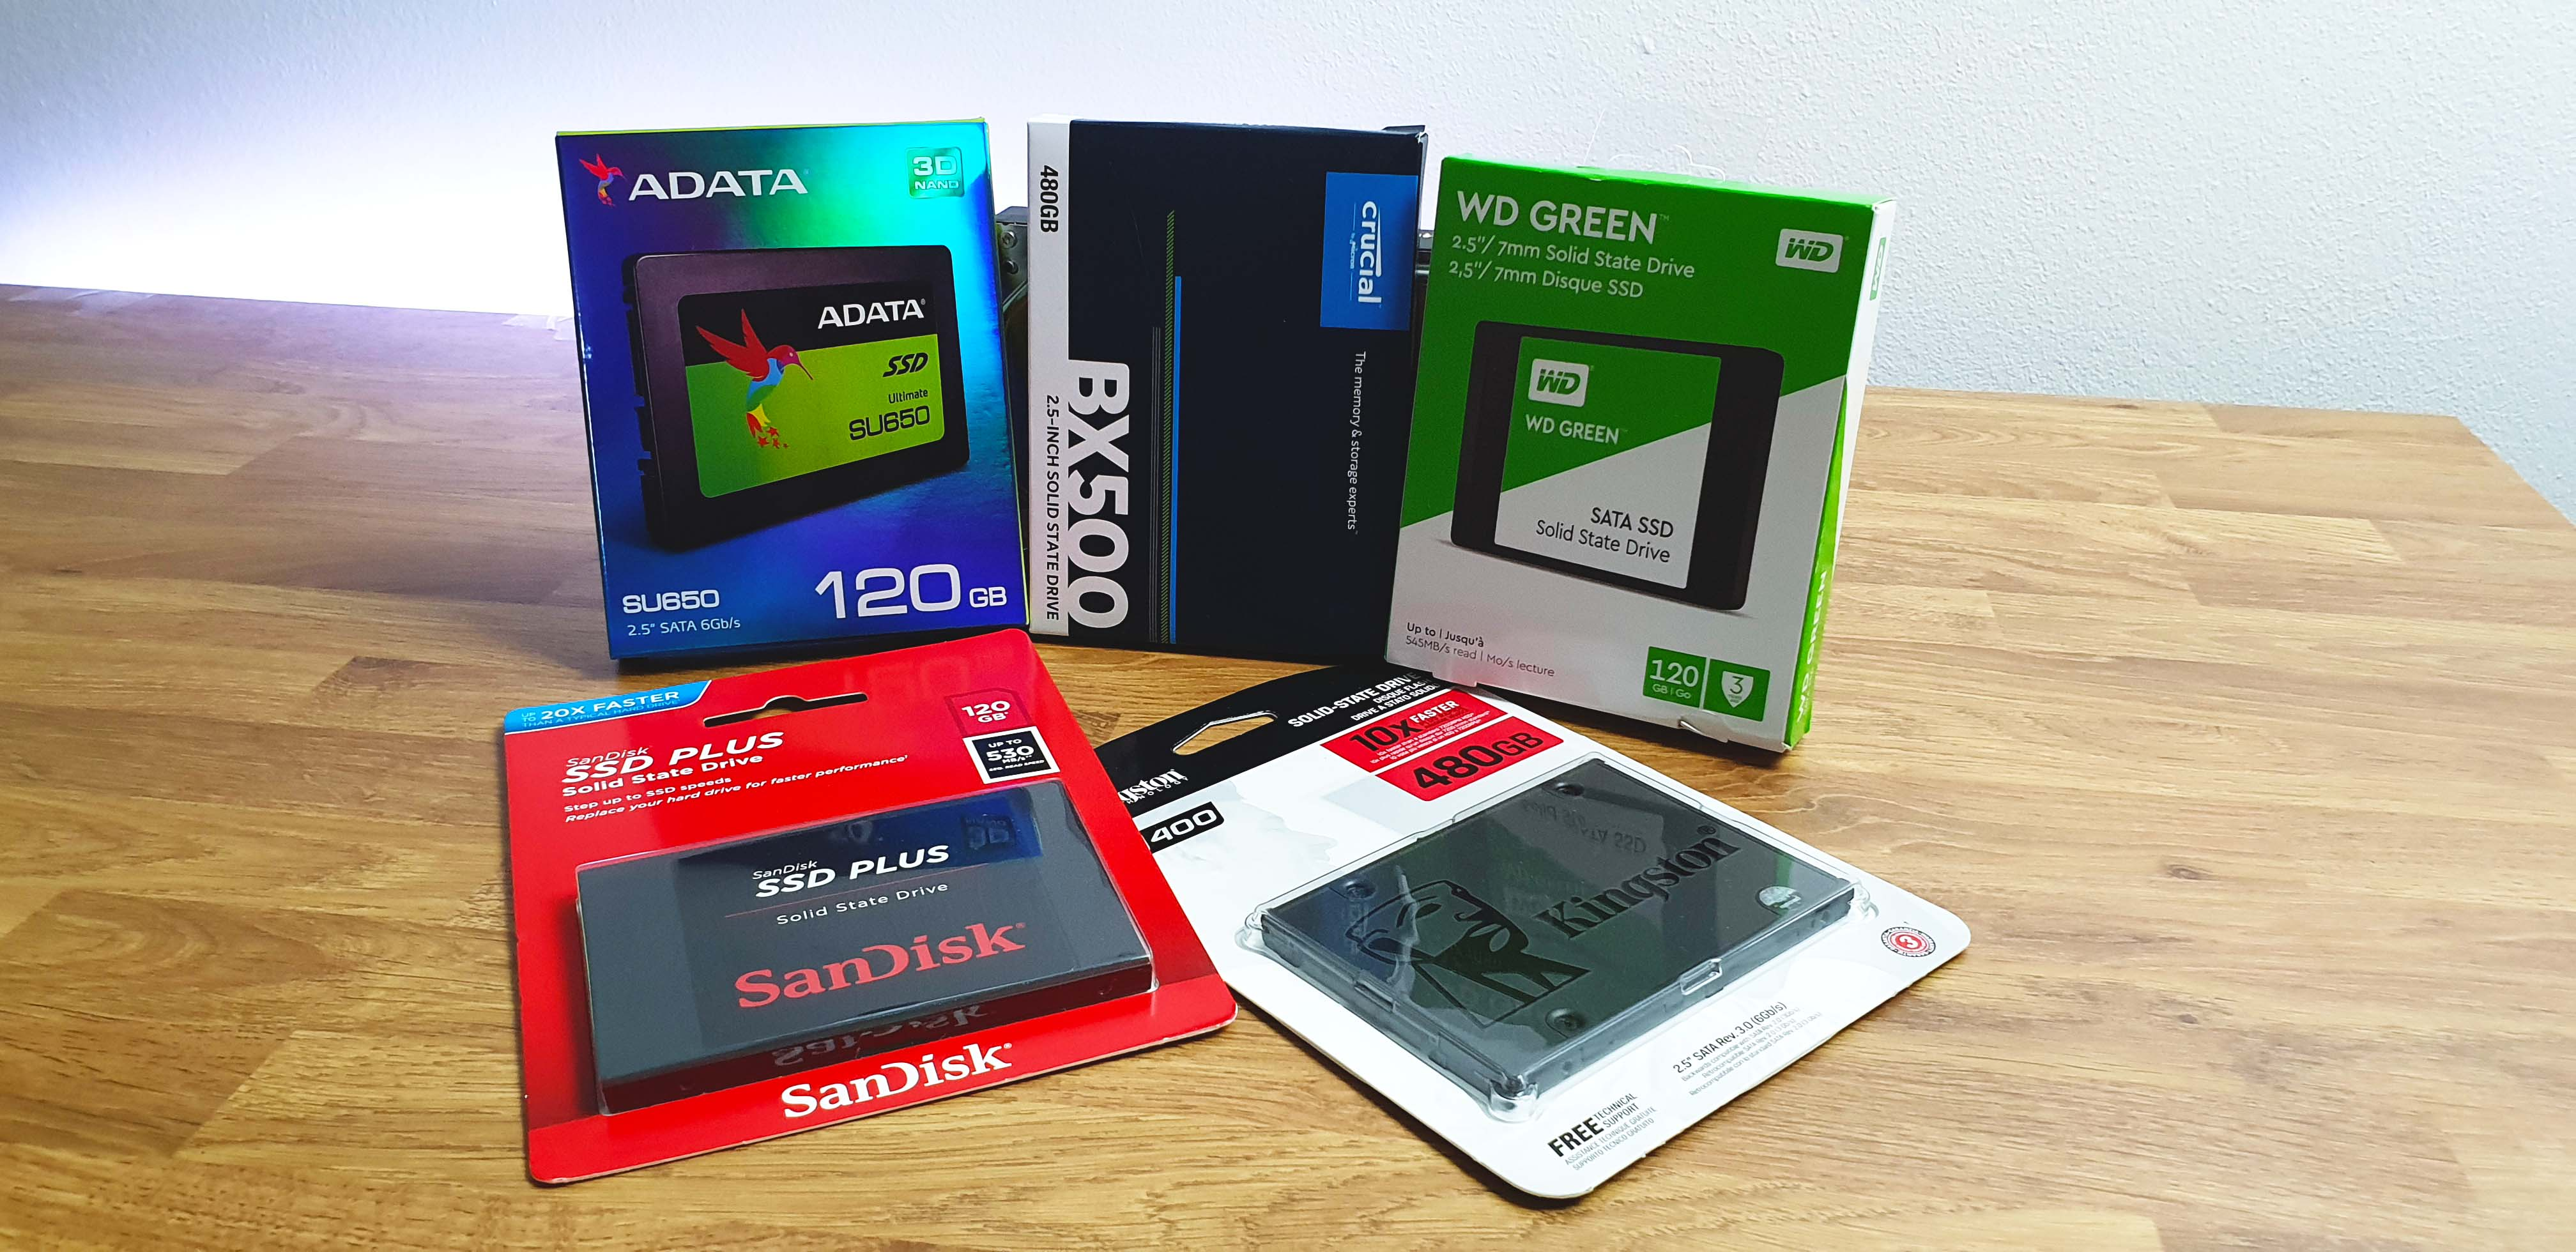 Ssd Value Roundup Crucial Bx500 Best Bang For Buck Kingston A400 Wd Green 240gb 25 Sata When Ssds Solid State Drives First Came Out As Per Any New Tech They Were Expensive Because Finally Promised Us The Revolution We Expecting